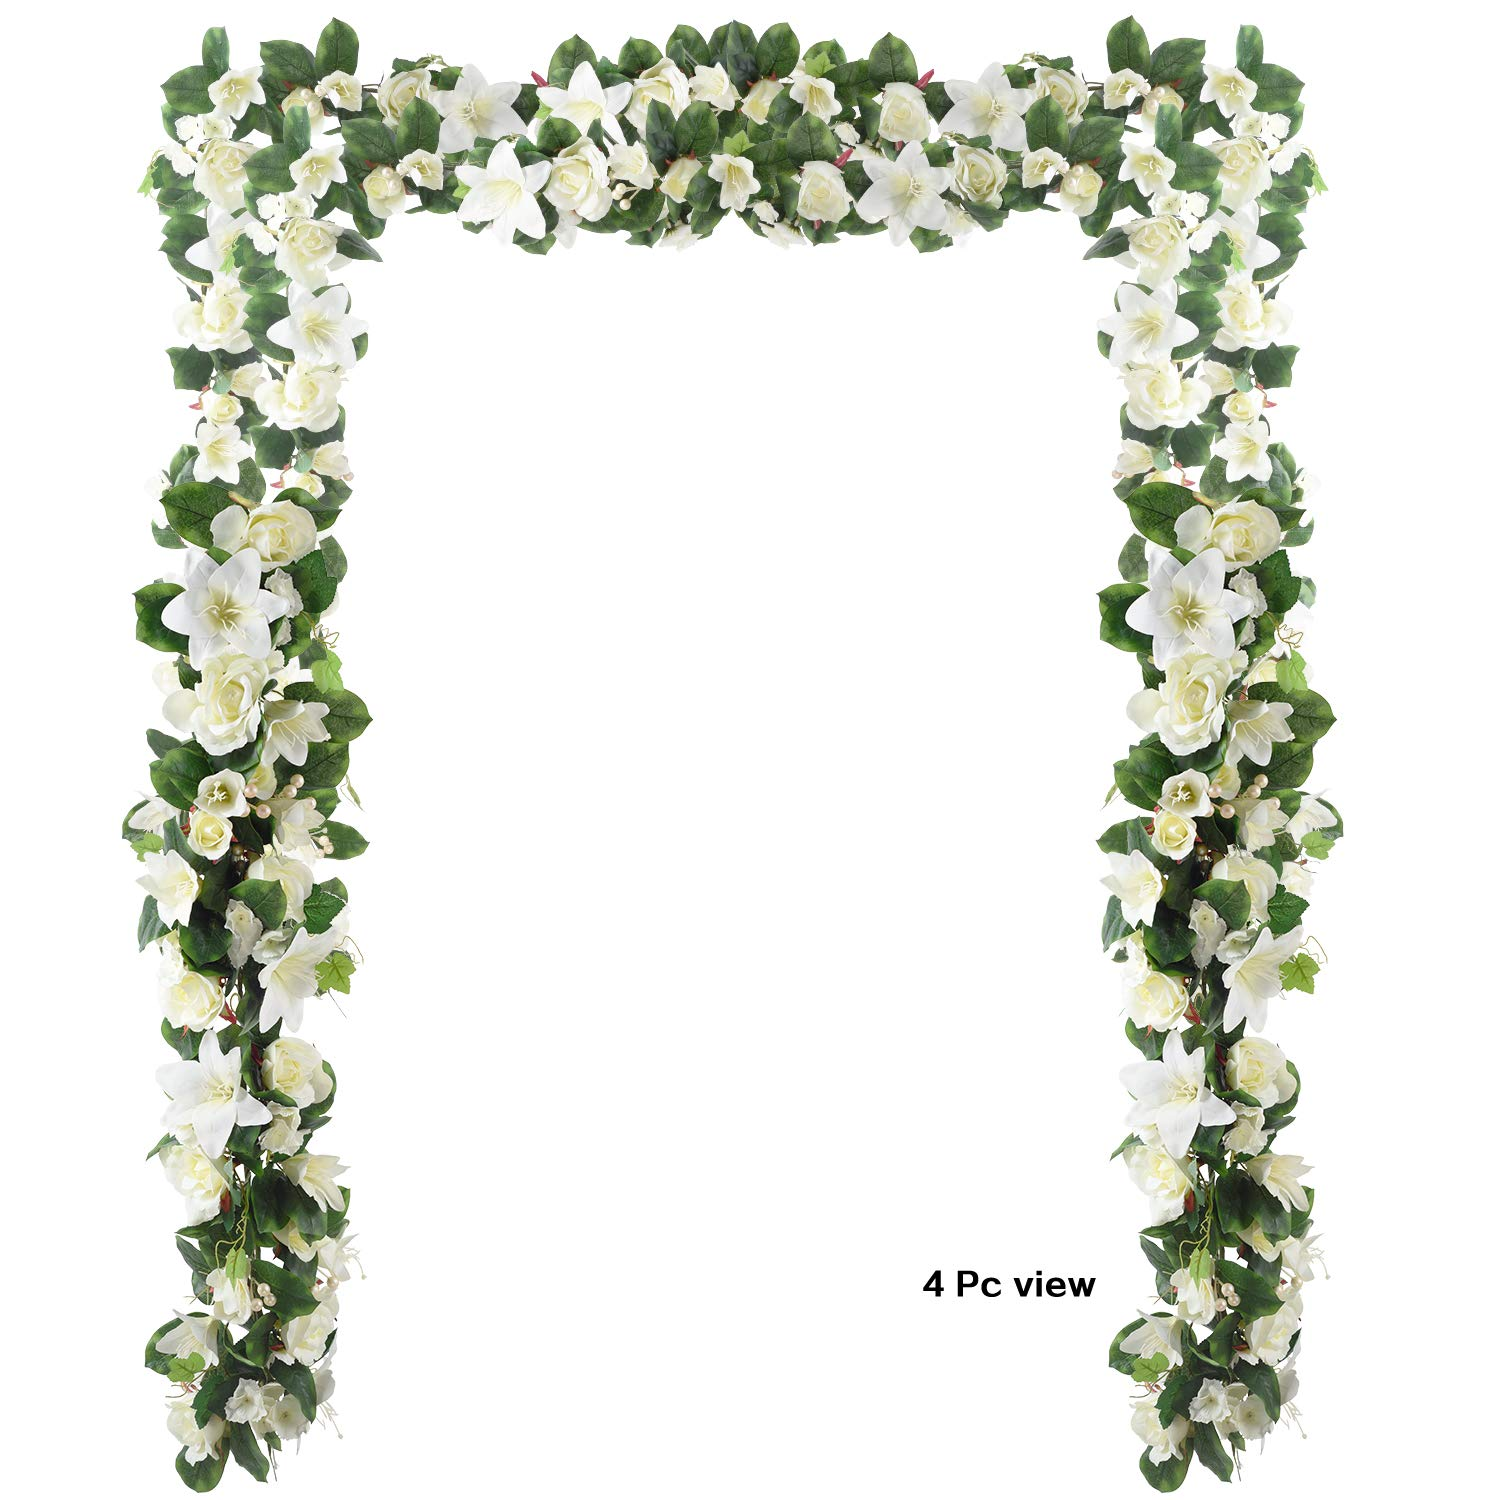 6 Feet Artificial Rose and Lily Garland, Artificial Silk Rose Lily Flower Ivy Vine Leaf Hanging Garland Wreath Garland for Home Wedding Wall Decor Lily  (White) by Woooow